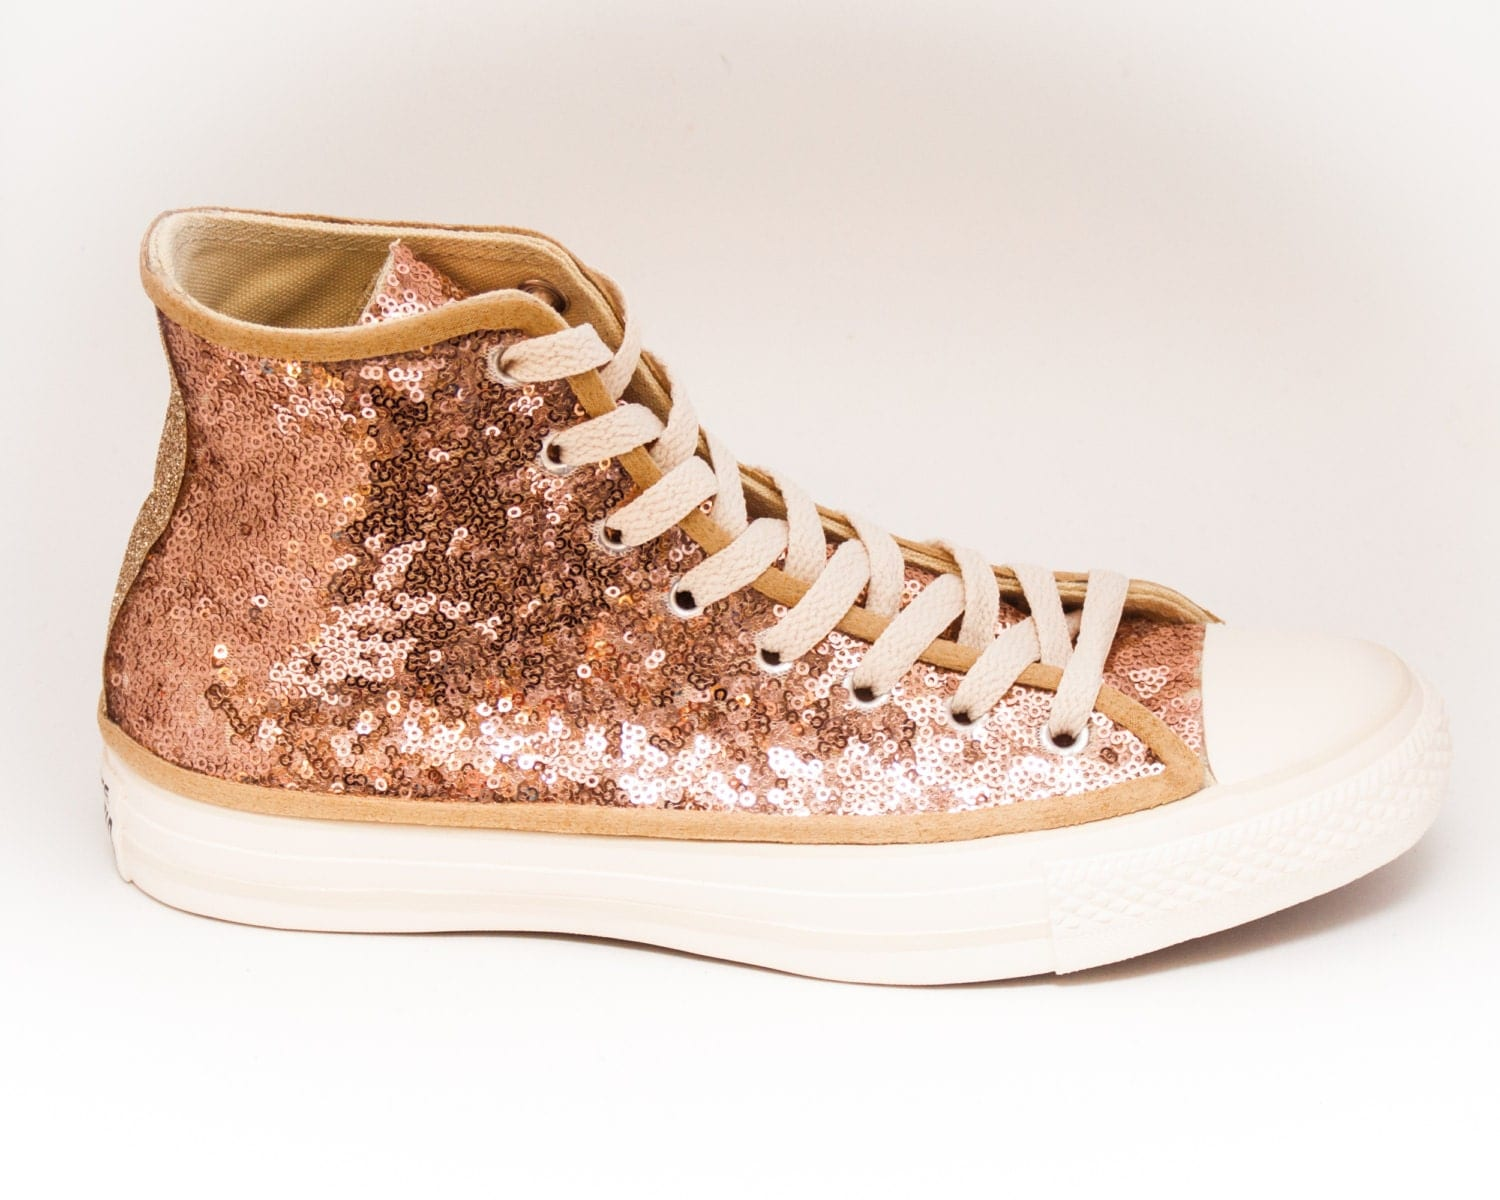 217285061433 SEQUIN ROSE GOLD ON CHAMPAGNE CANVAS CUSTOMIZED CONVERSE CANVAS HI TOP  SNEAKERS TENNIS SHOES on The Hunt